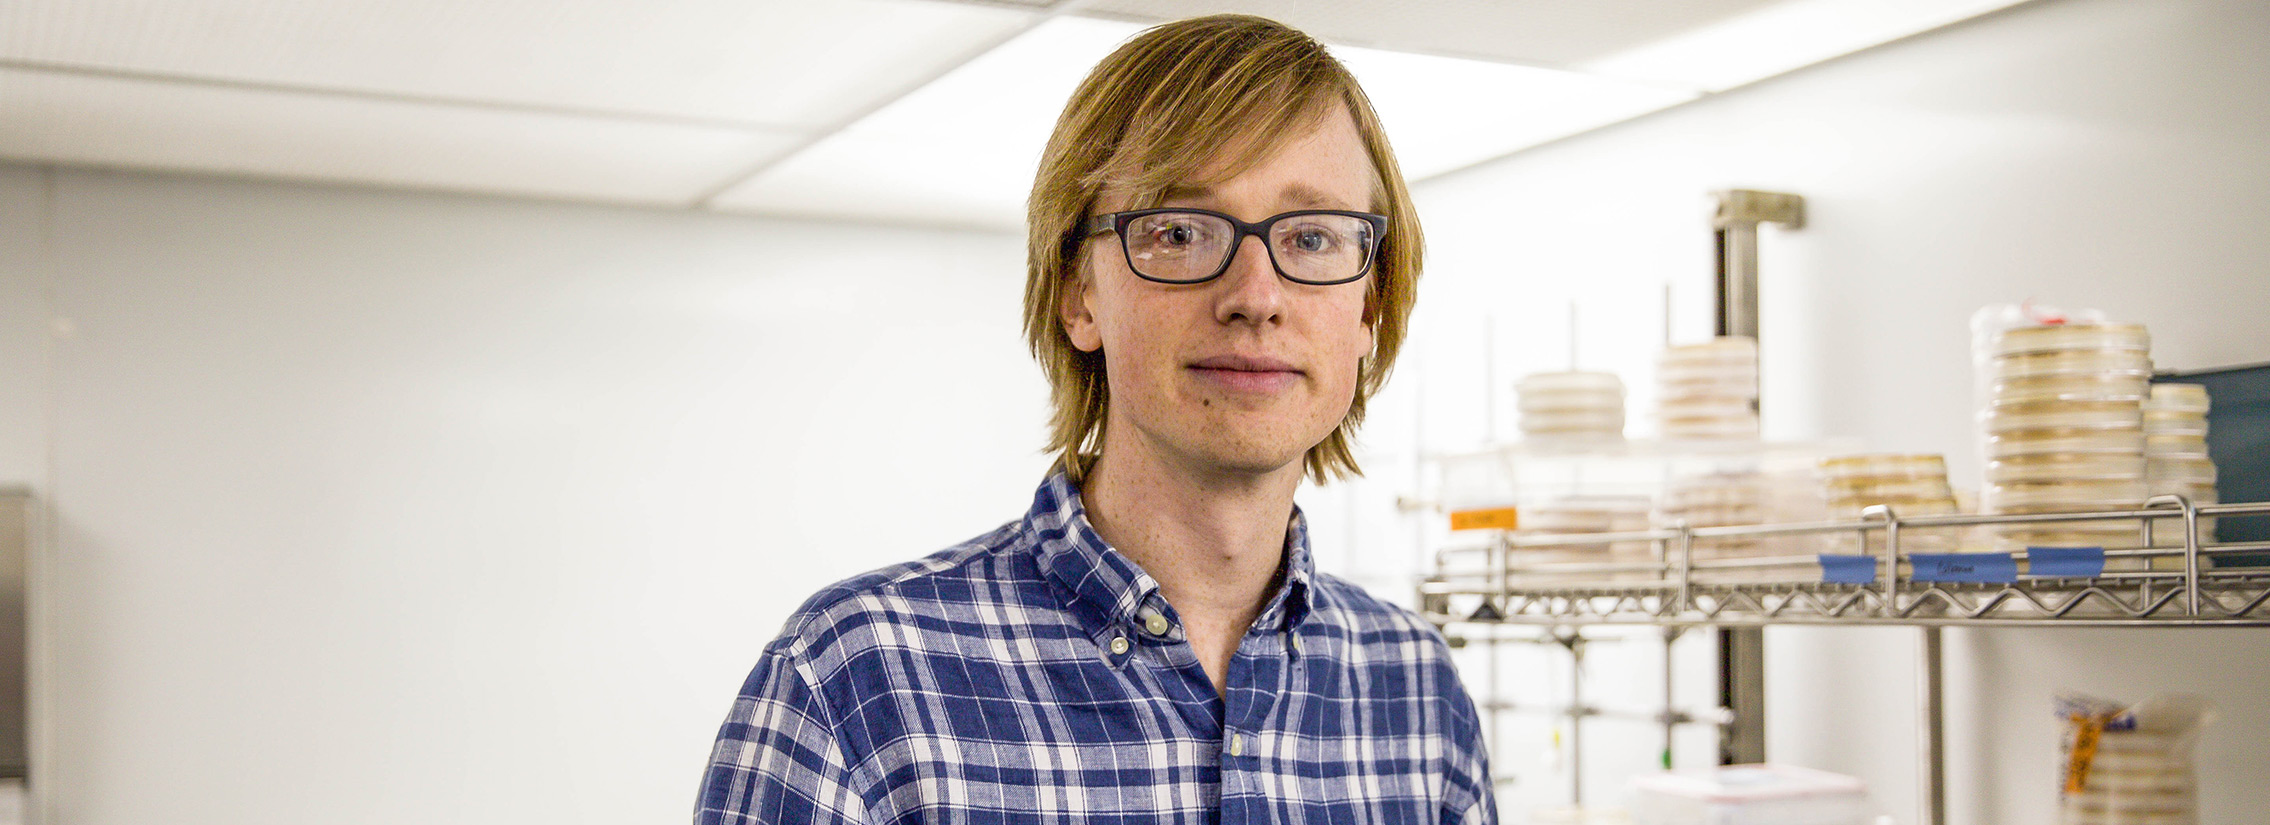 Spotlight on Faculty: Ethan Van Arnam, Assistant Professor of Chemistry